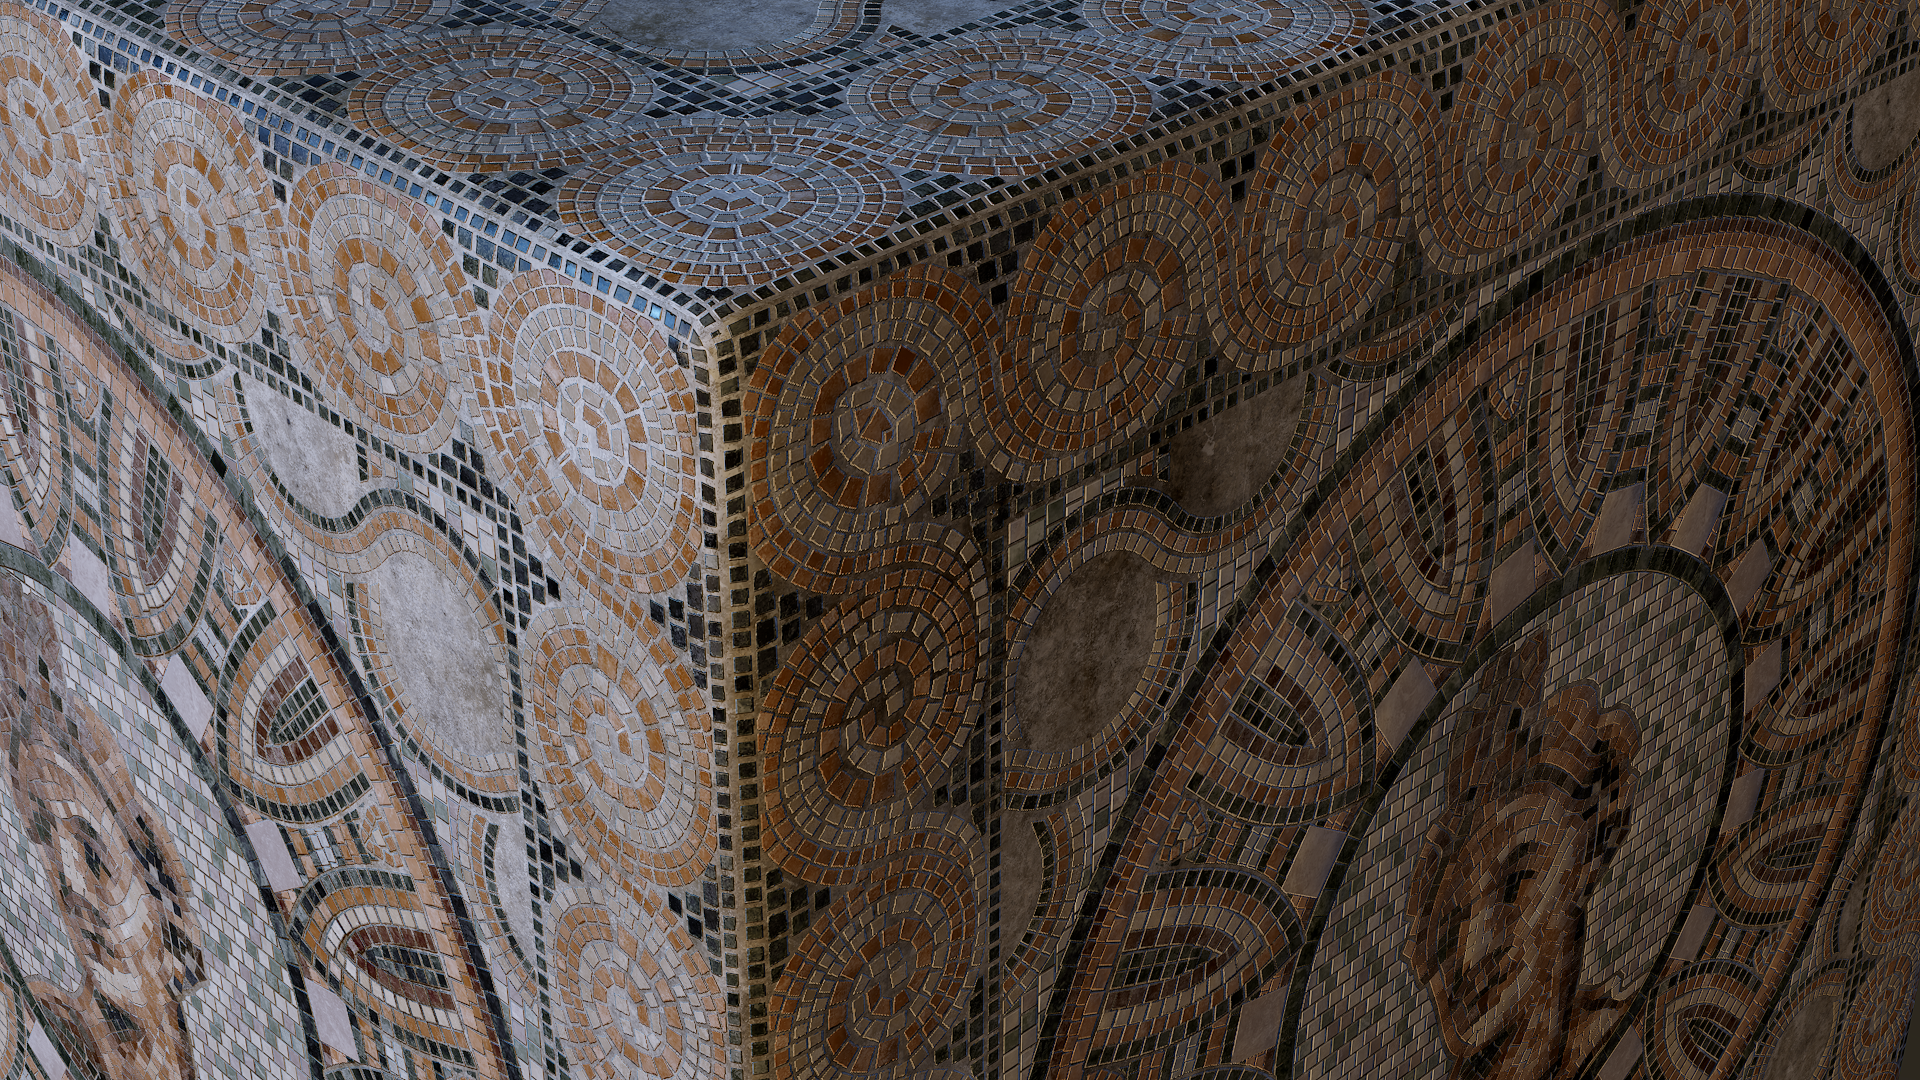 Mosaic Tile Floor - Substance Material Tutorial